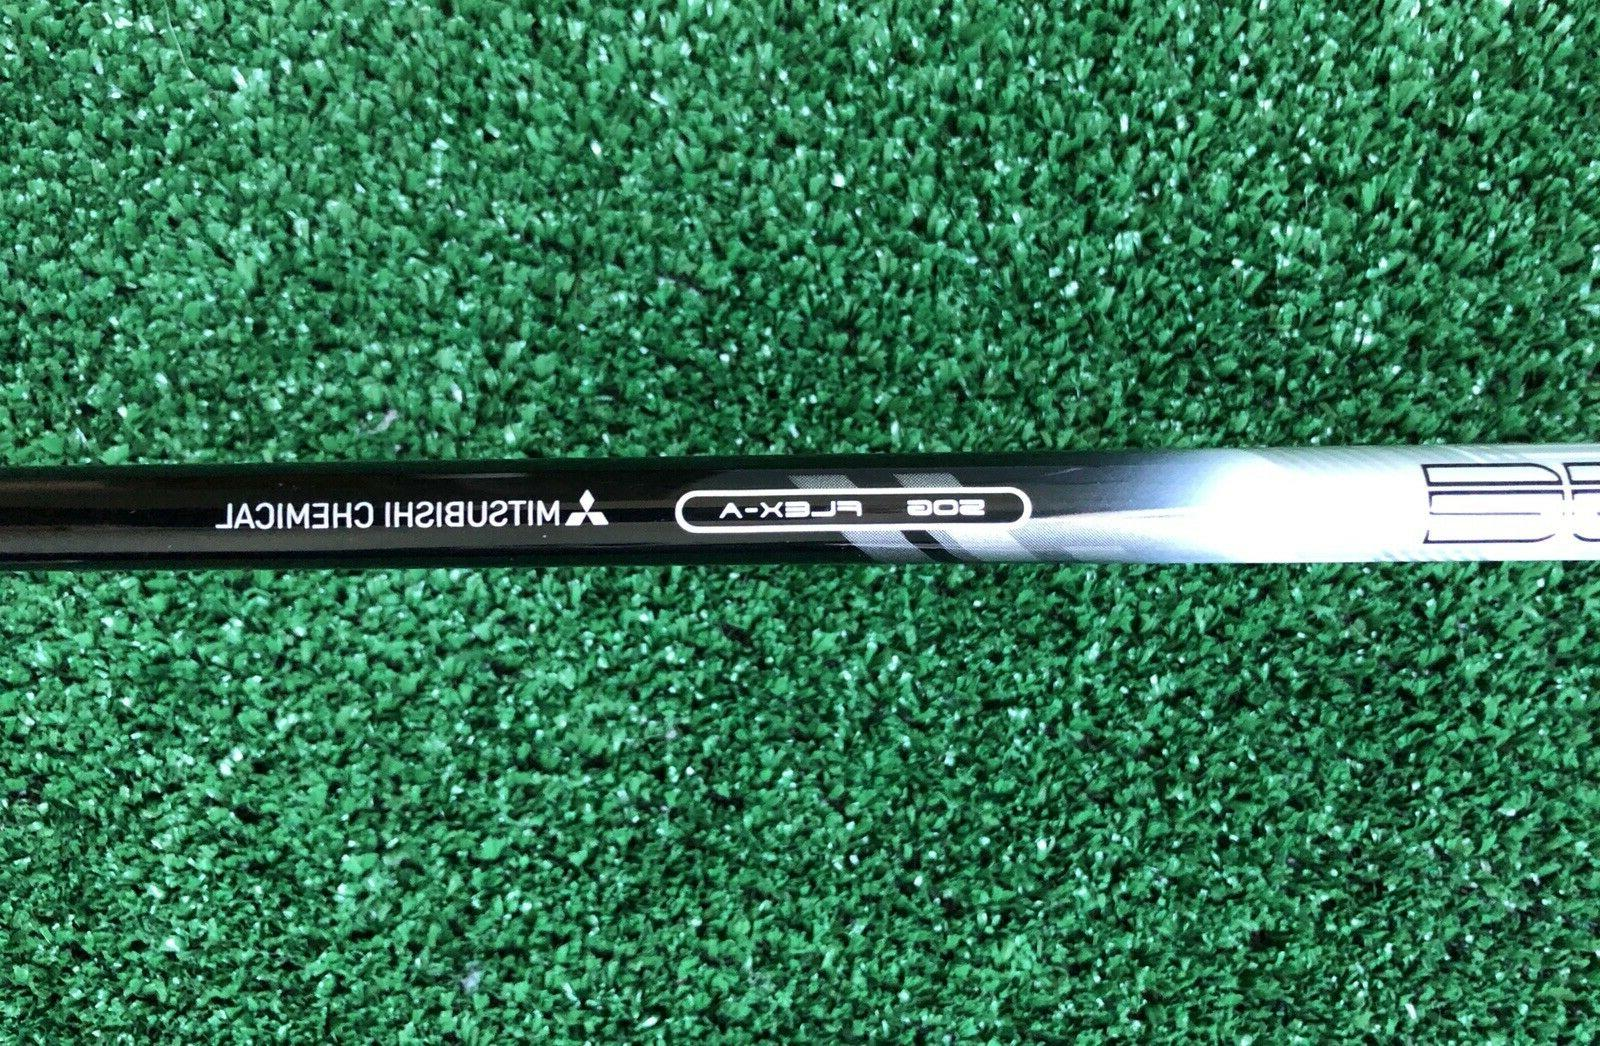 NEW Armour TA1 10.5° Adjustable Driver, KURO Men's +